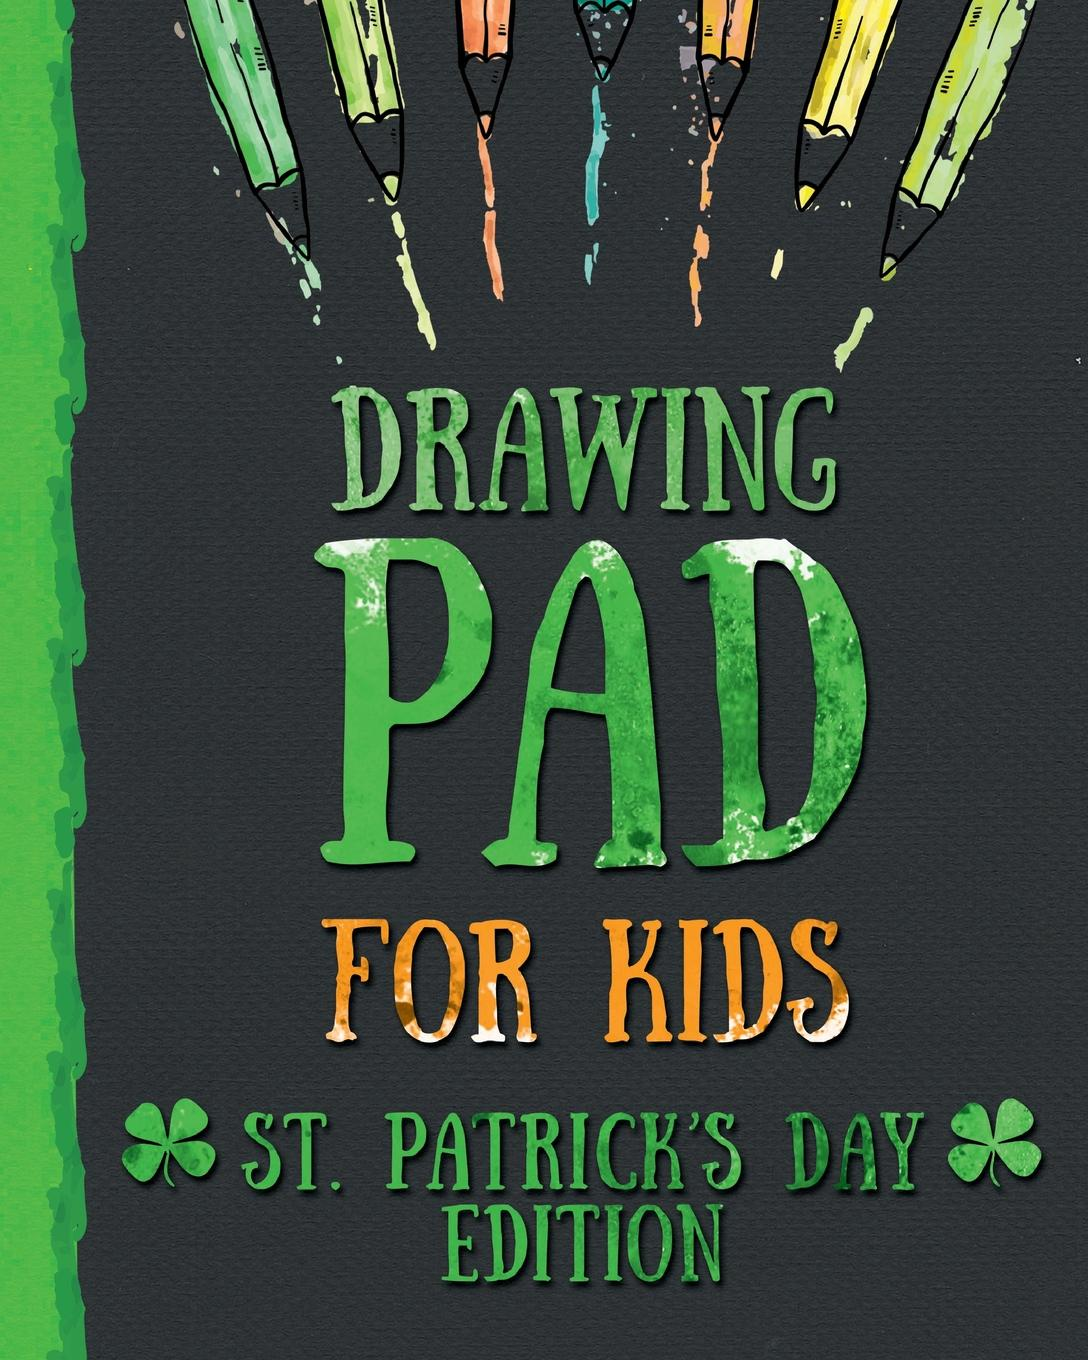 Peanut Prodigy Drawing Pad for Kids - St. Patrick.s Day Edition. Creative Blank Sketch Book for Boys and Girls Ages 3, 4, 5, 6, 7, 8, 9, and 10 Years Old - An Arts and Crafts Book for Coloring, Drawing, Doodling and Painting on St. Patricks Day st george for england songs and plays for st george s day